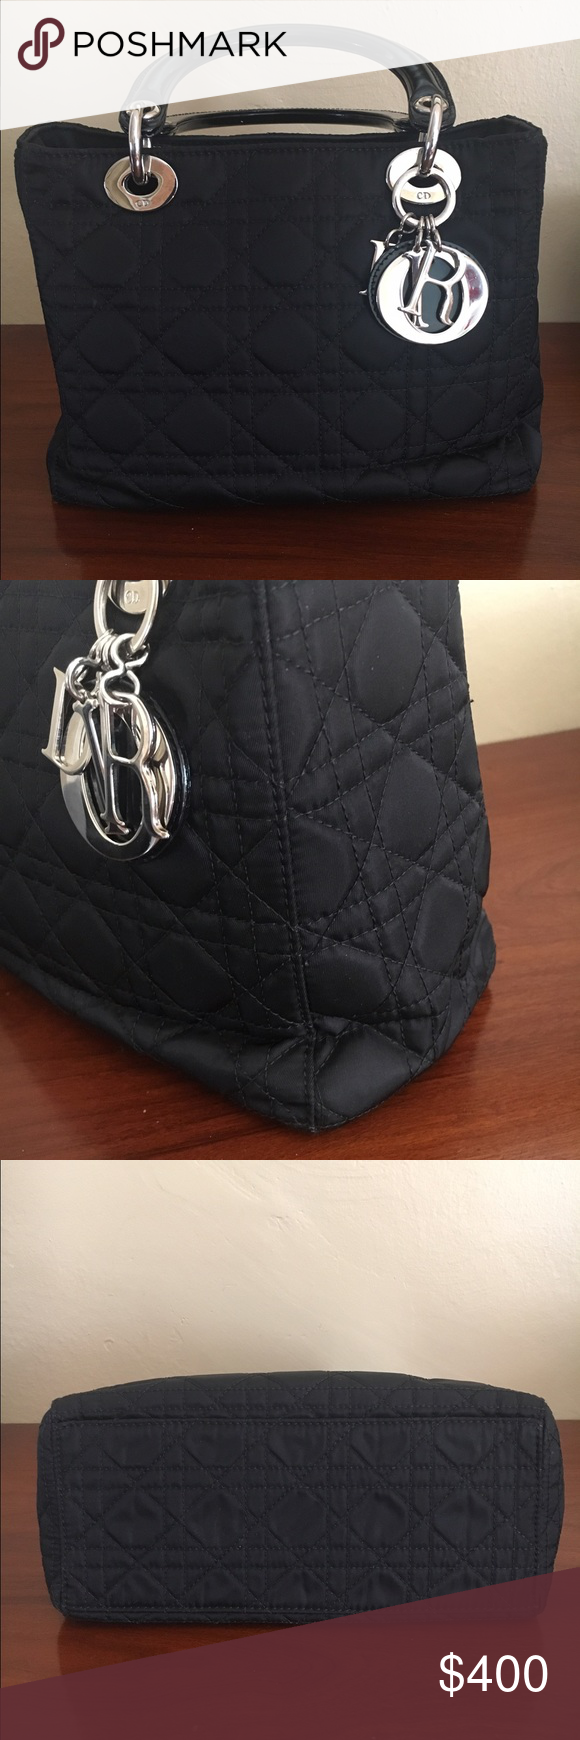 Soft Lady Dior Authentic. Approximately 7x9.5x4. Comes with strap, authentication card, dust bag and care instruction book. Christian Dior Bags